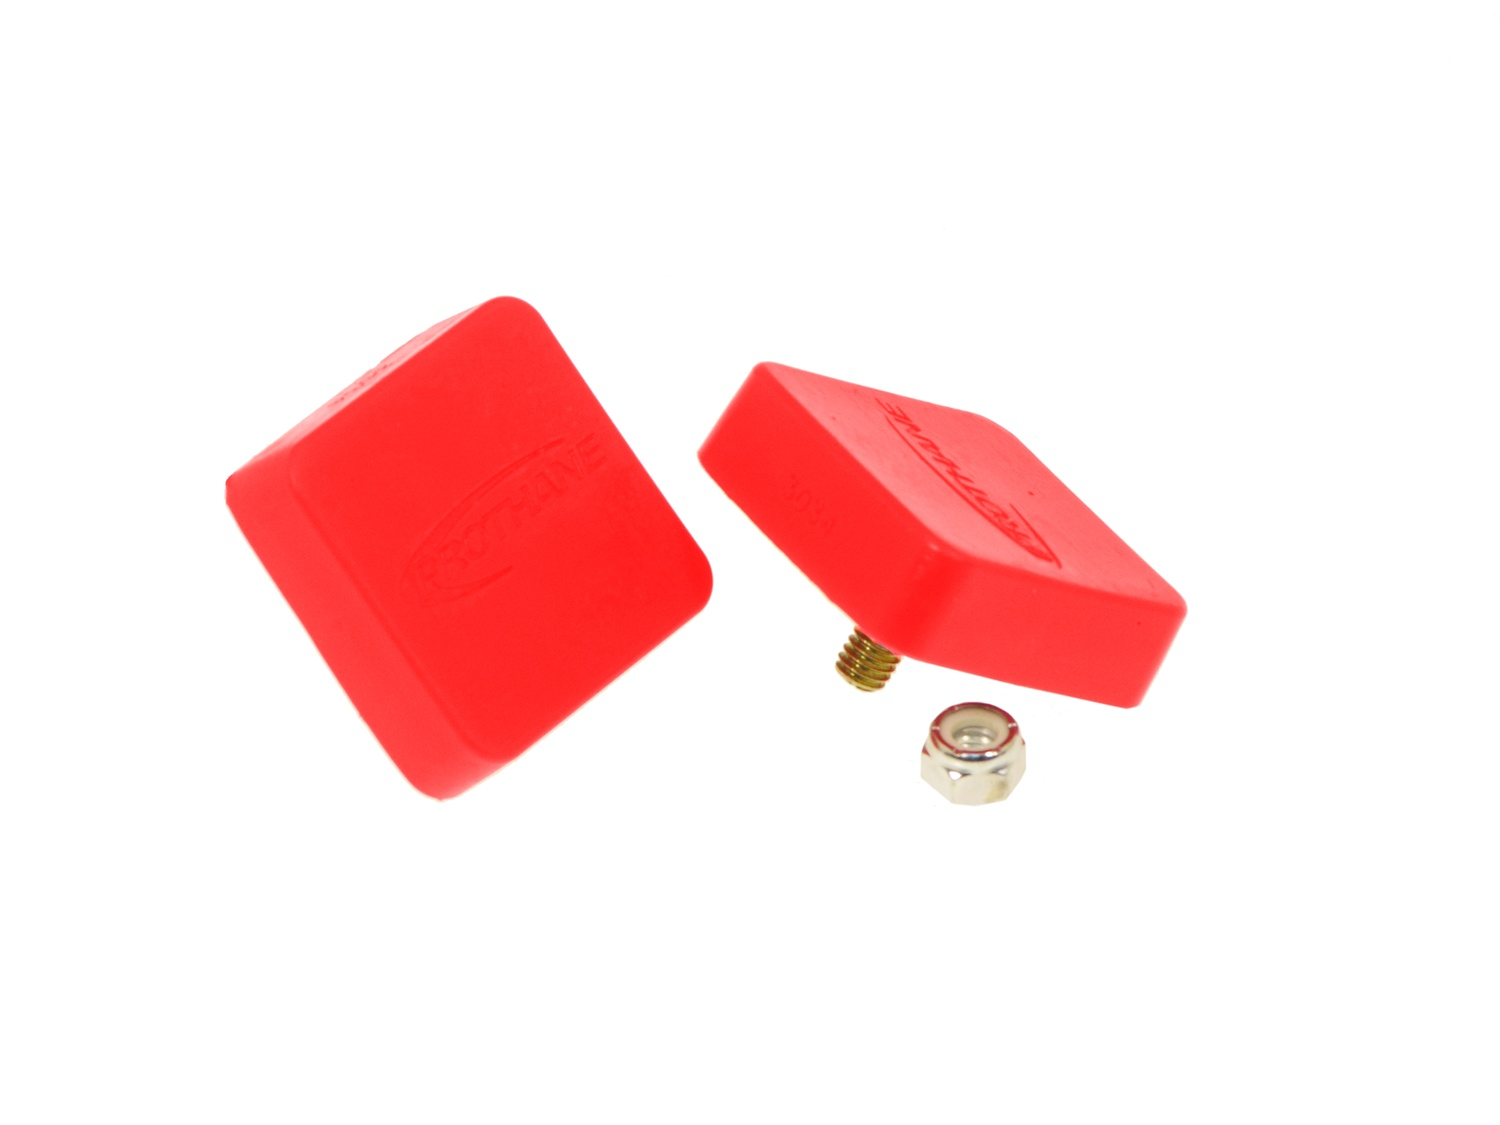 All Vehicles (Universal) Prothane Bump Stops - Red